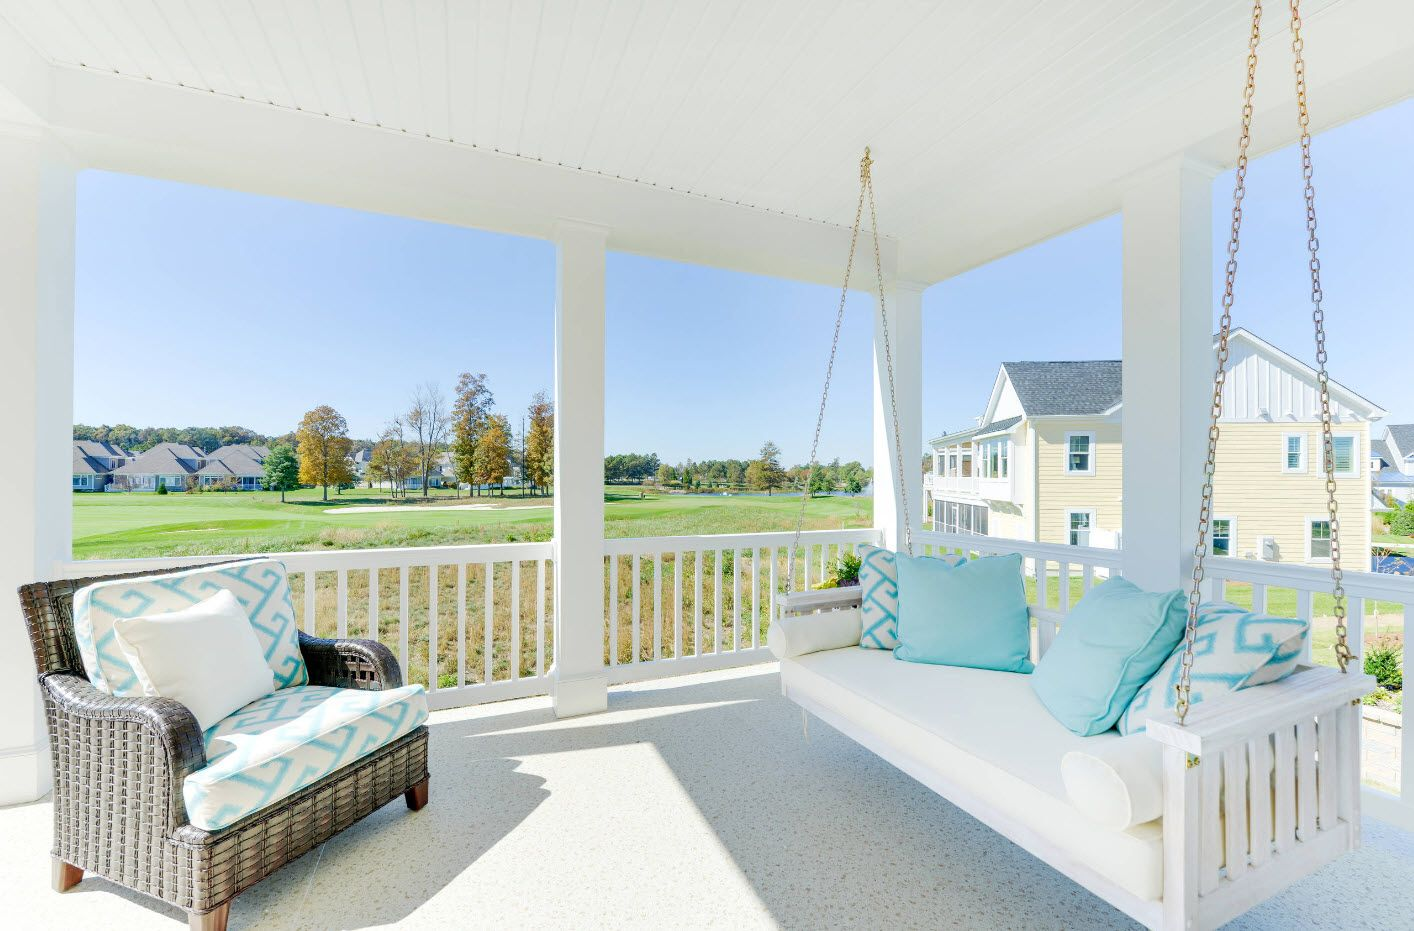 Swing bed on the rope at the speckless white deocrated porch